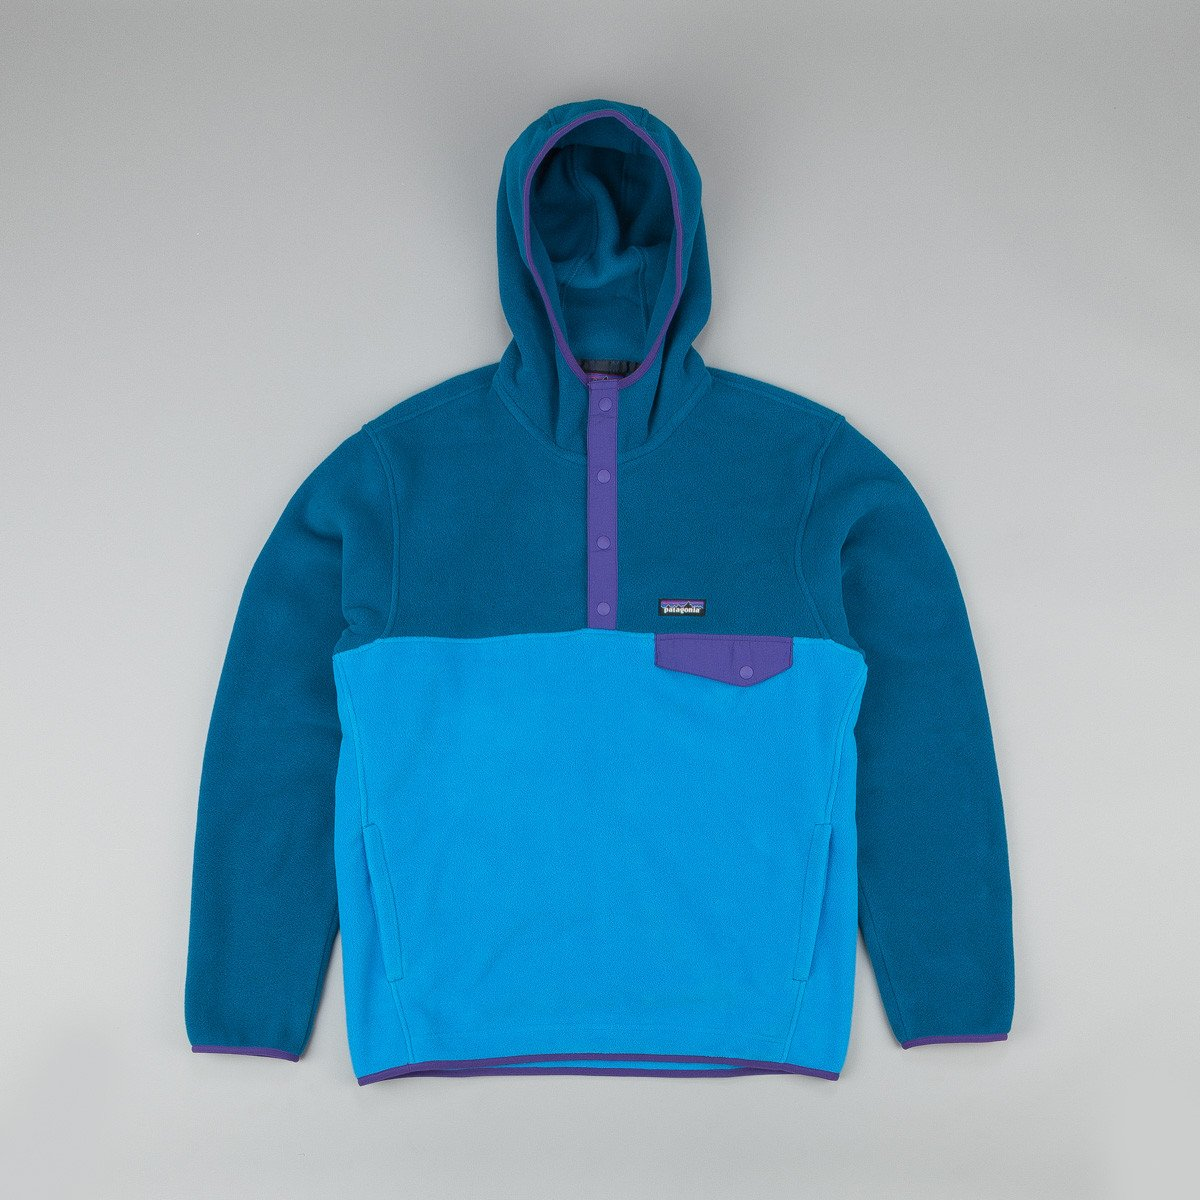 Patagonia Synchilla Snap-t Pullover Fleece | Patagonia Synchilla | Patagonia Synchilla Snap-t Fleece Pullover